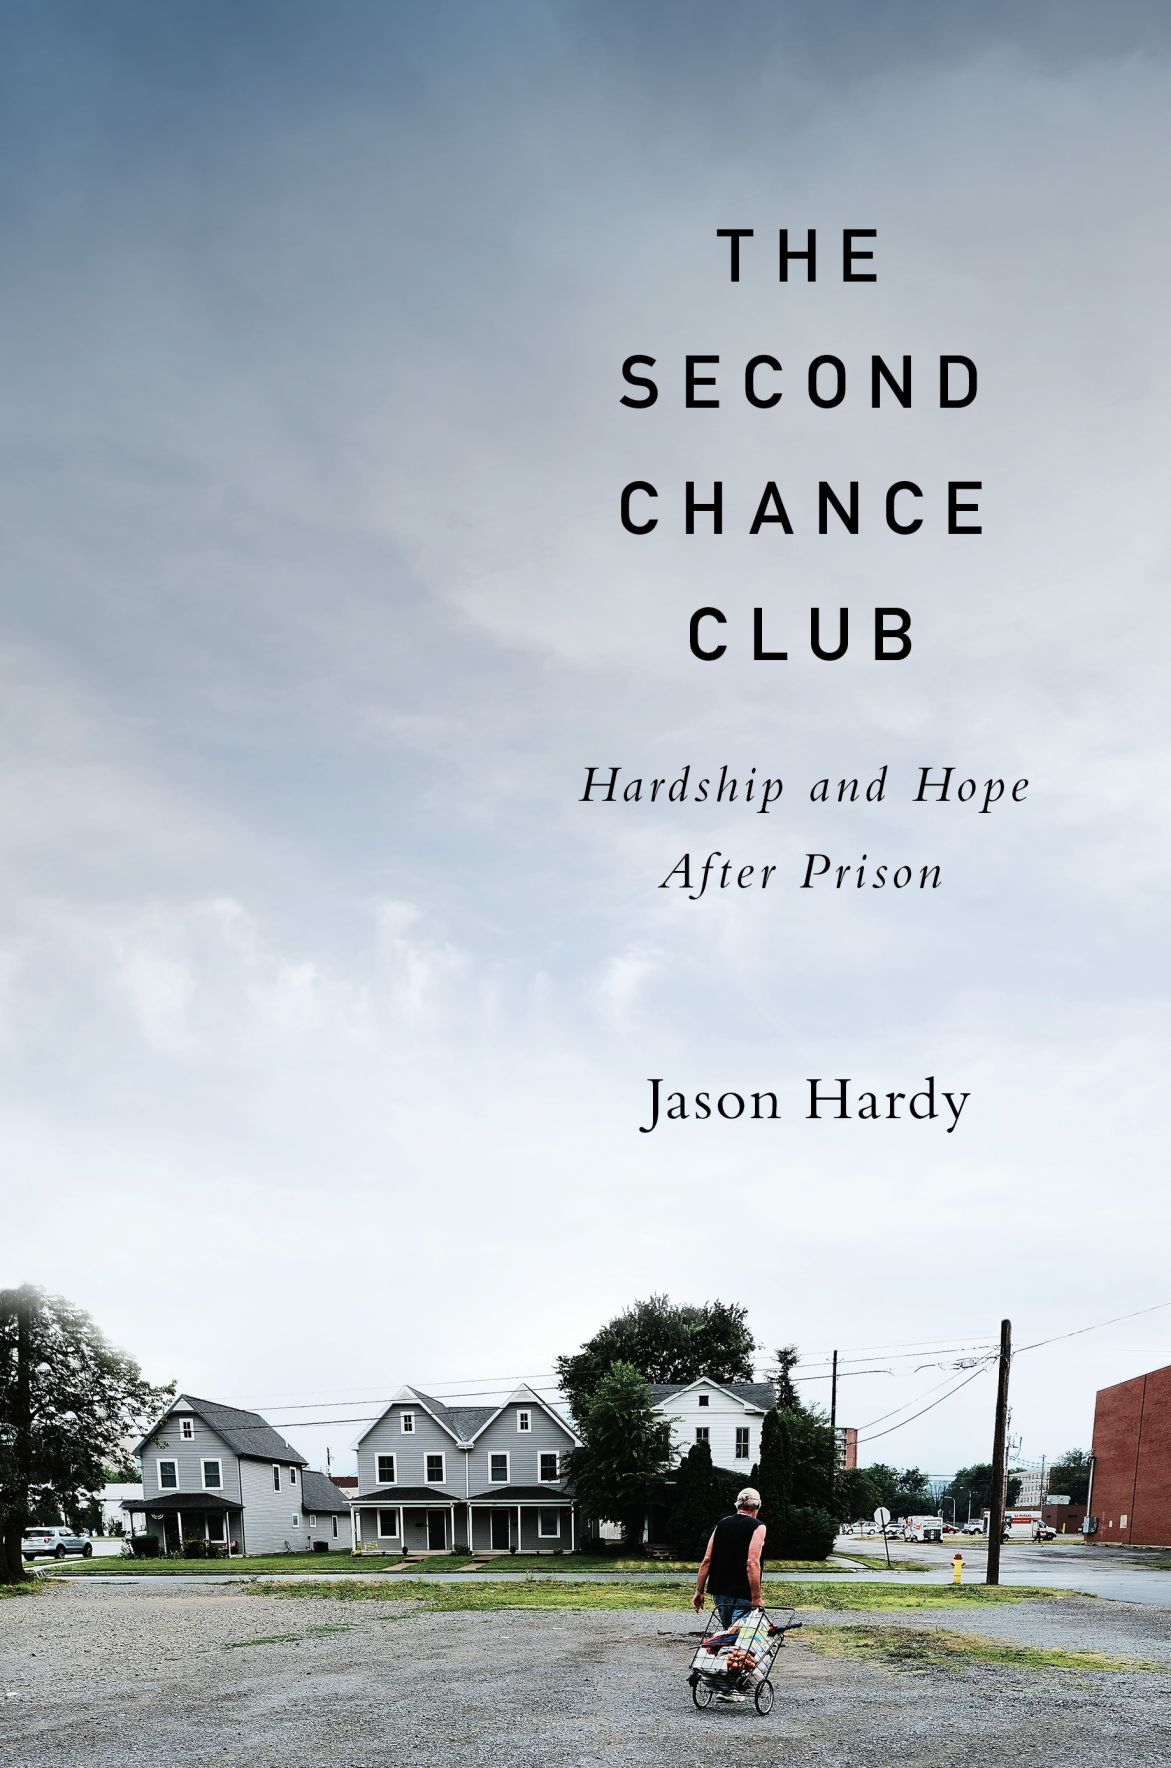 The Second Chance Club bookcover